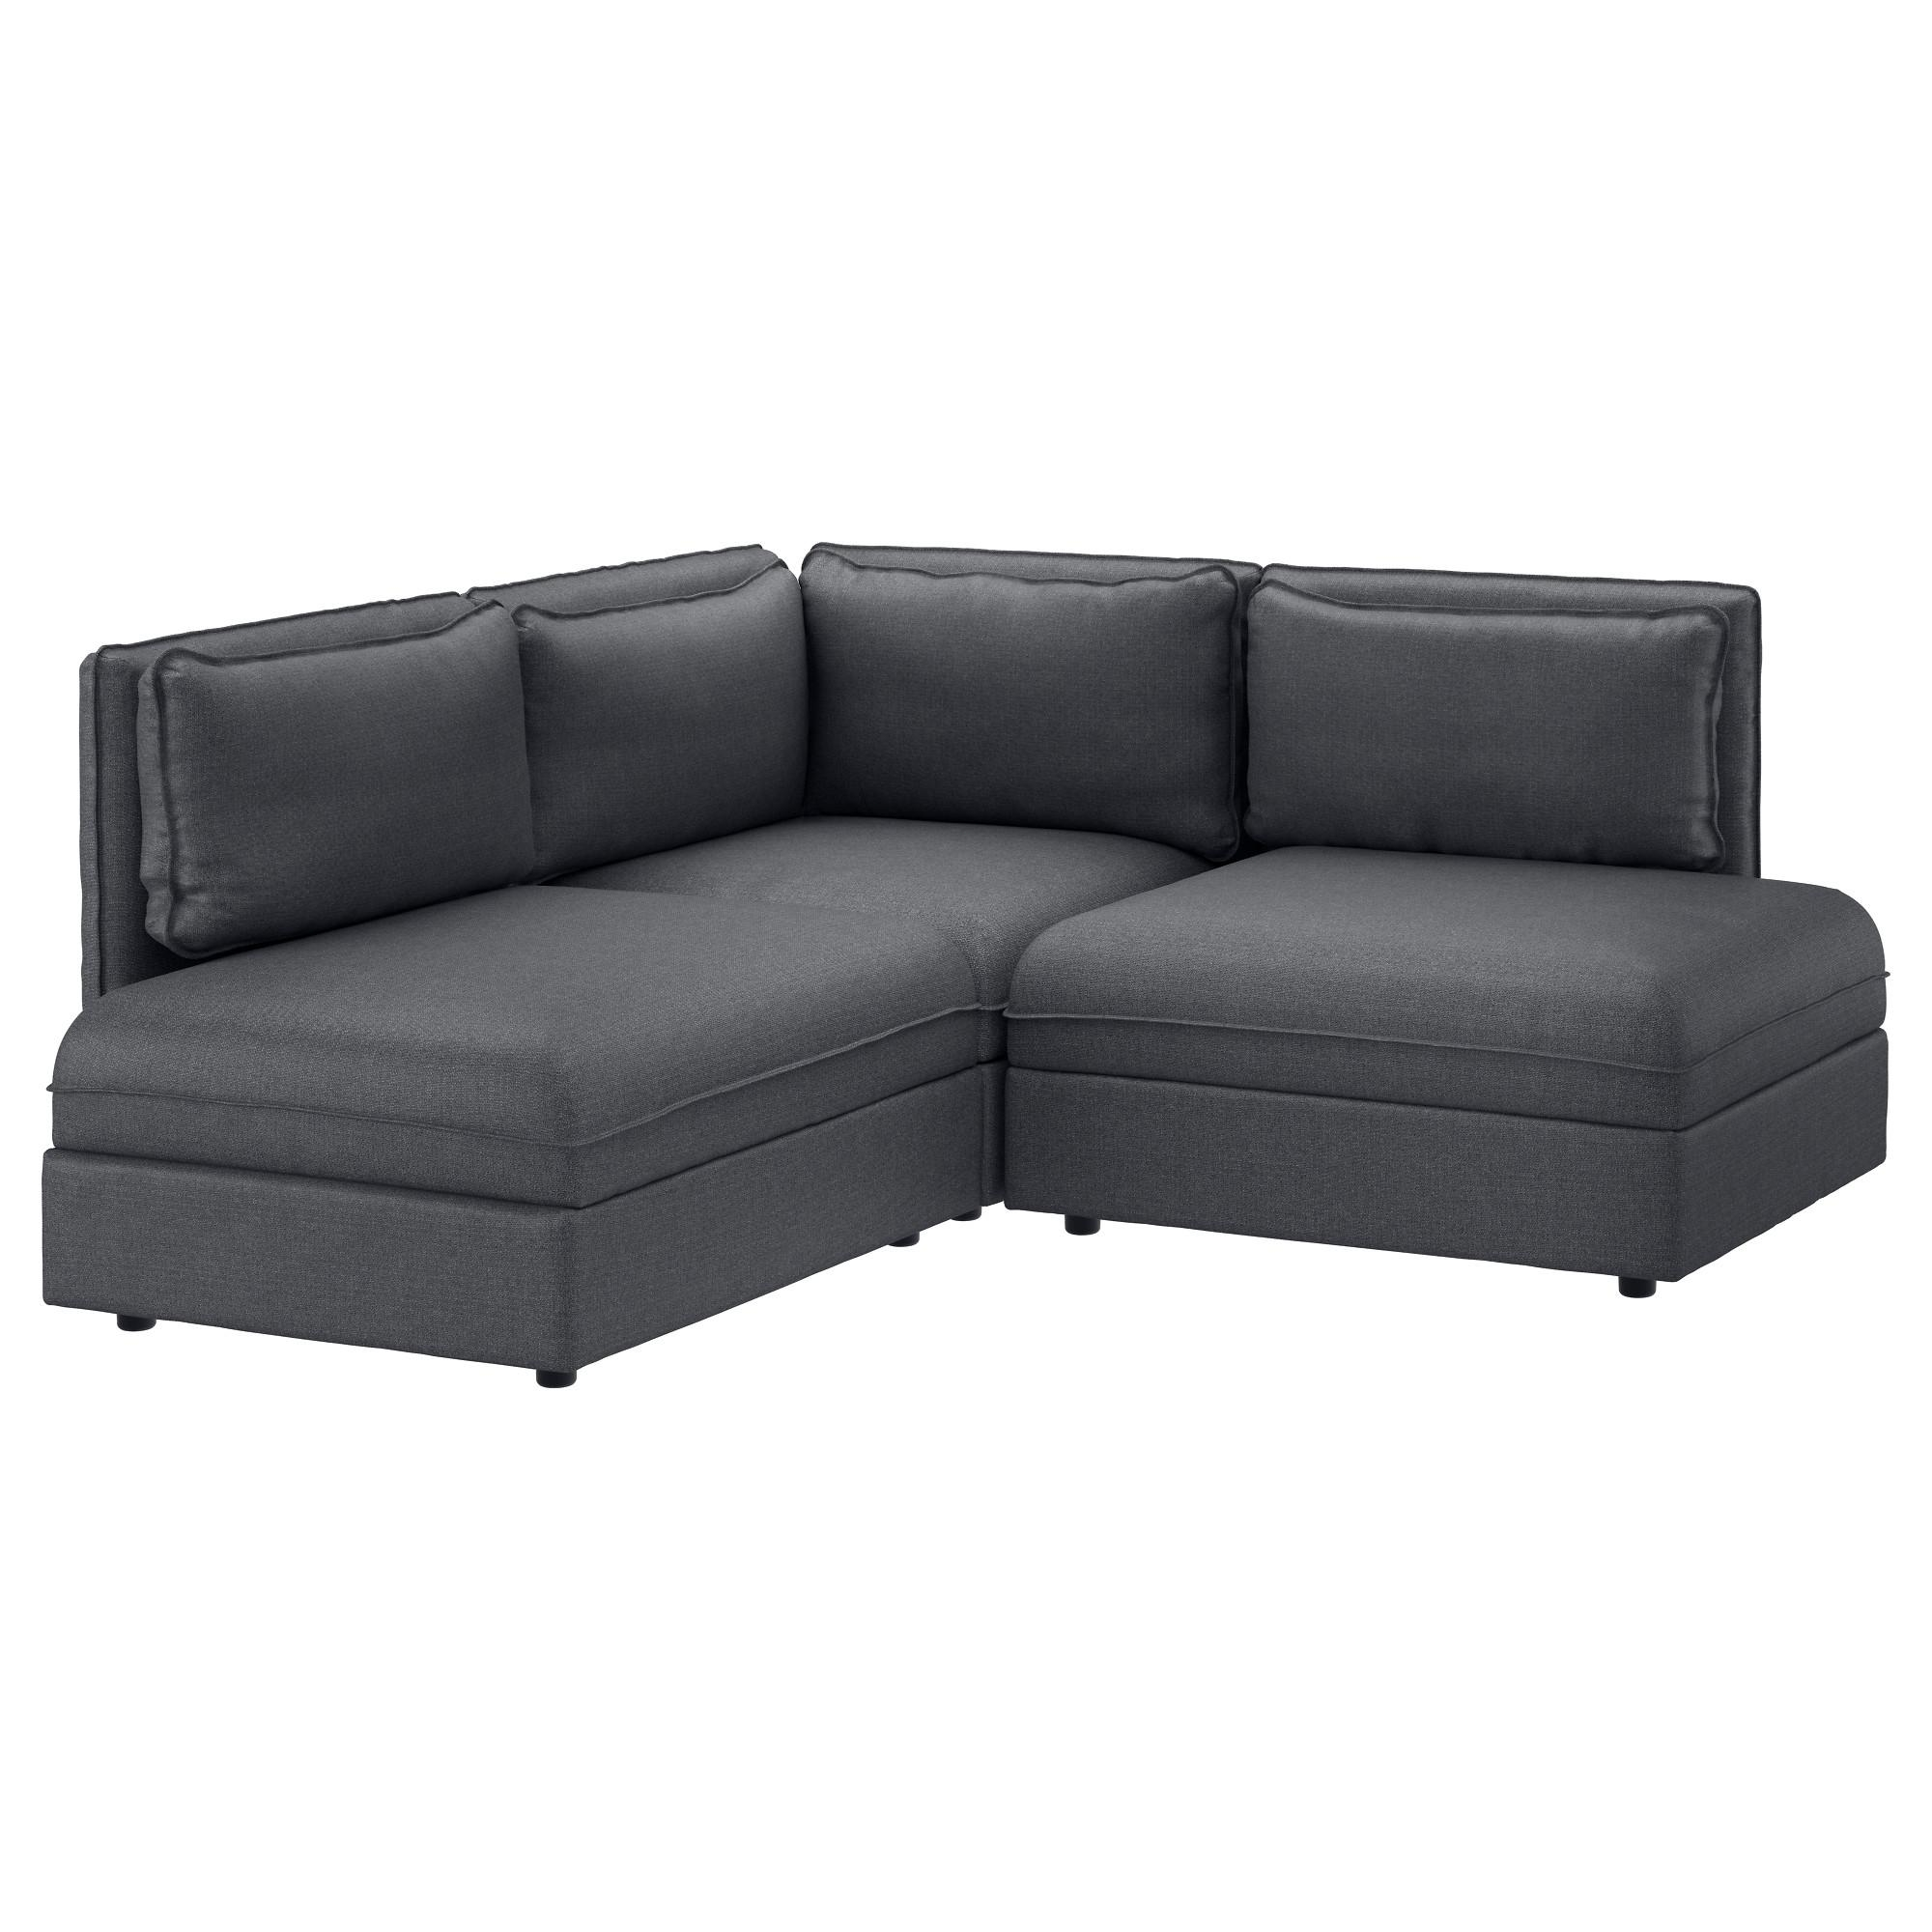 Vallentuna 3-Seat Corner Sofa Hillared Dark Grey - Ikea within Corner Sofas